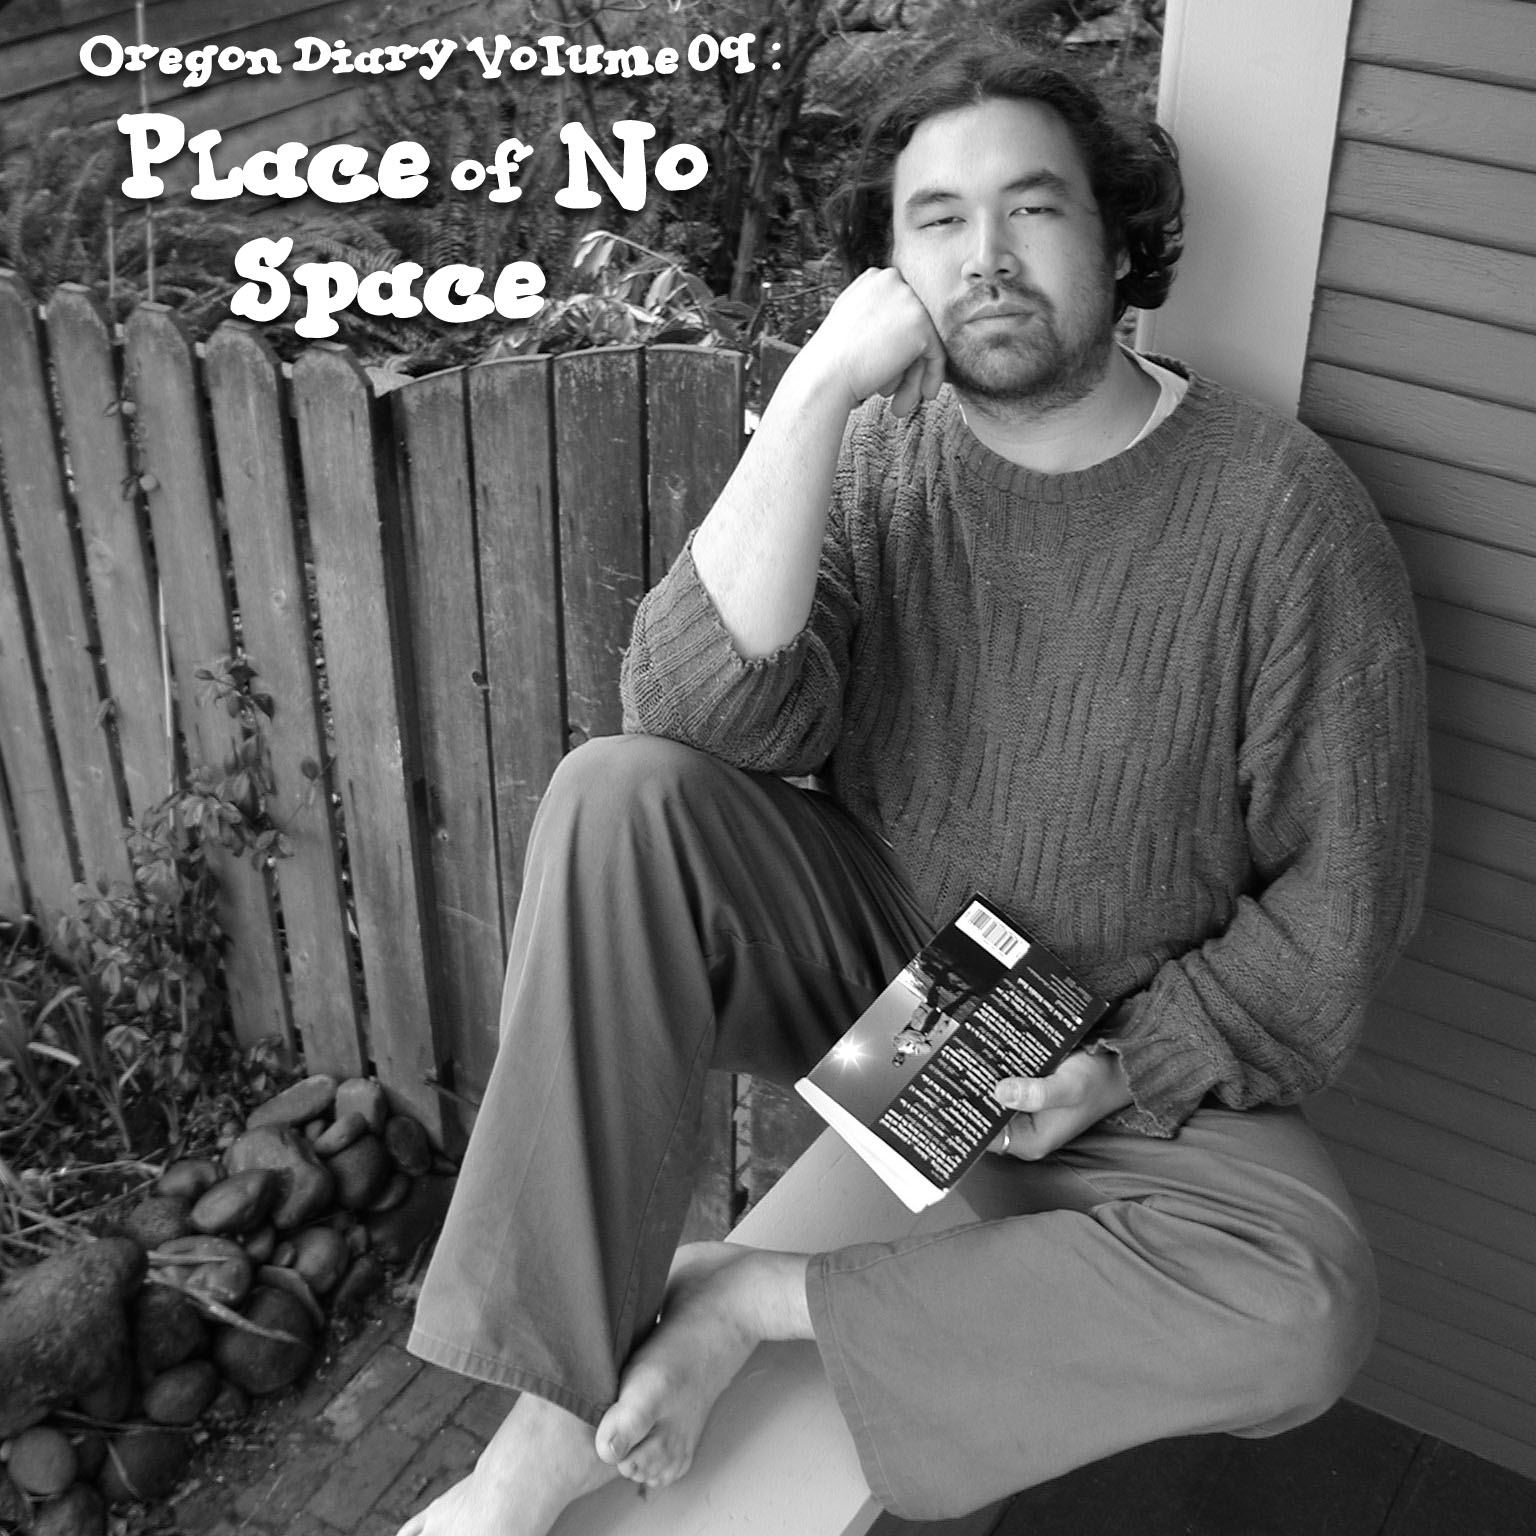 Oregon Diary Volume 09: Place of No Space